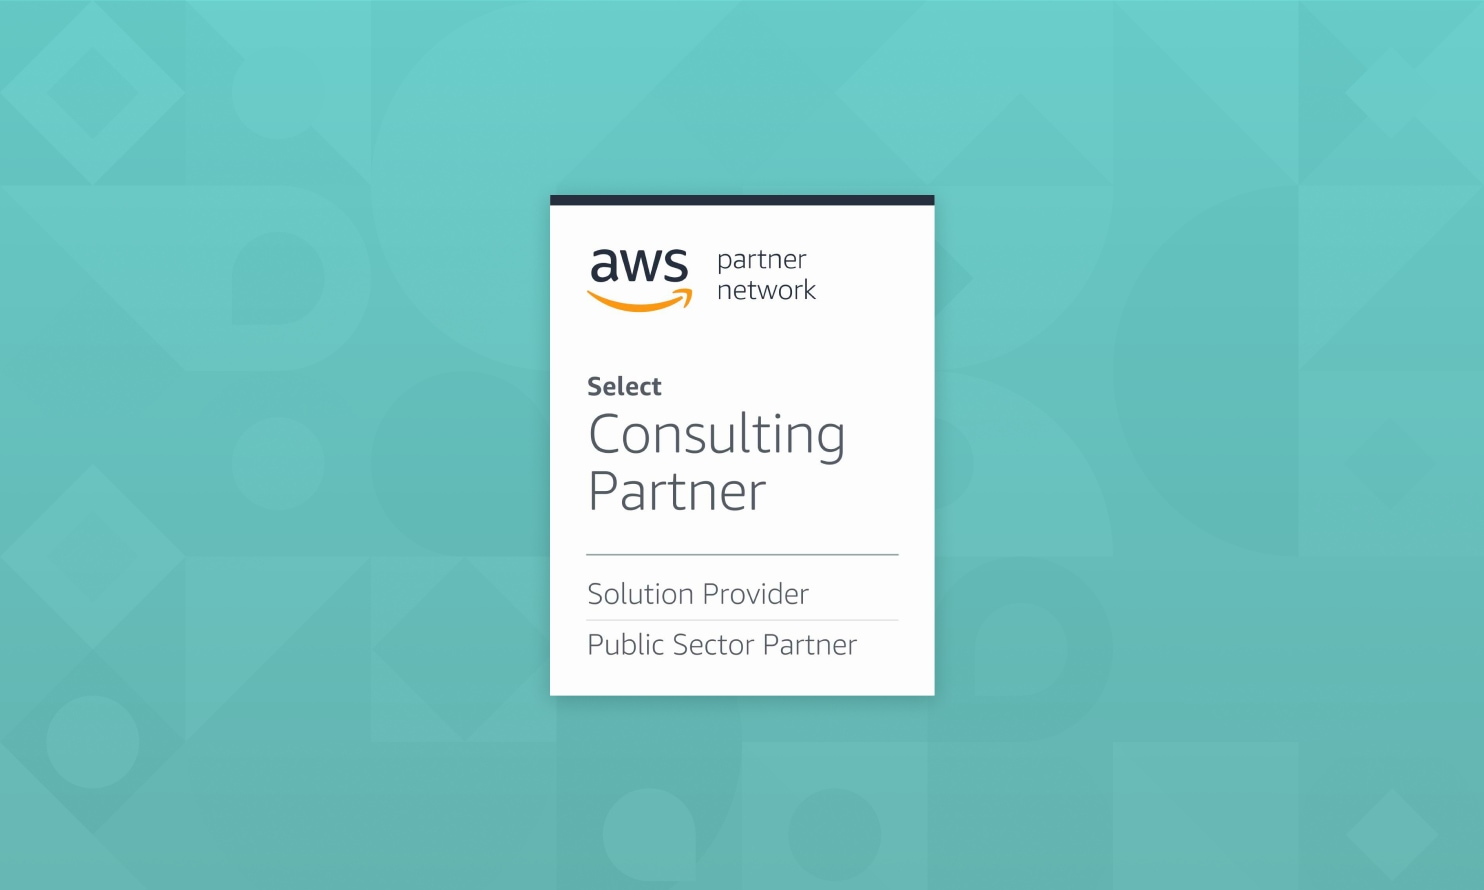 AWS - Solution Provider & Public Sector Partner